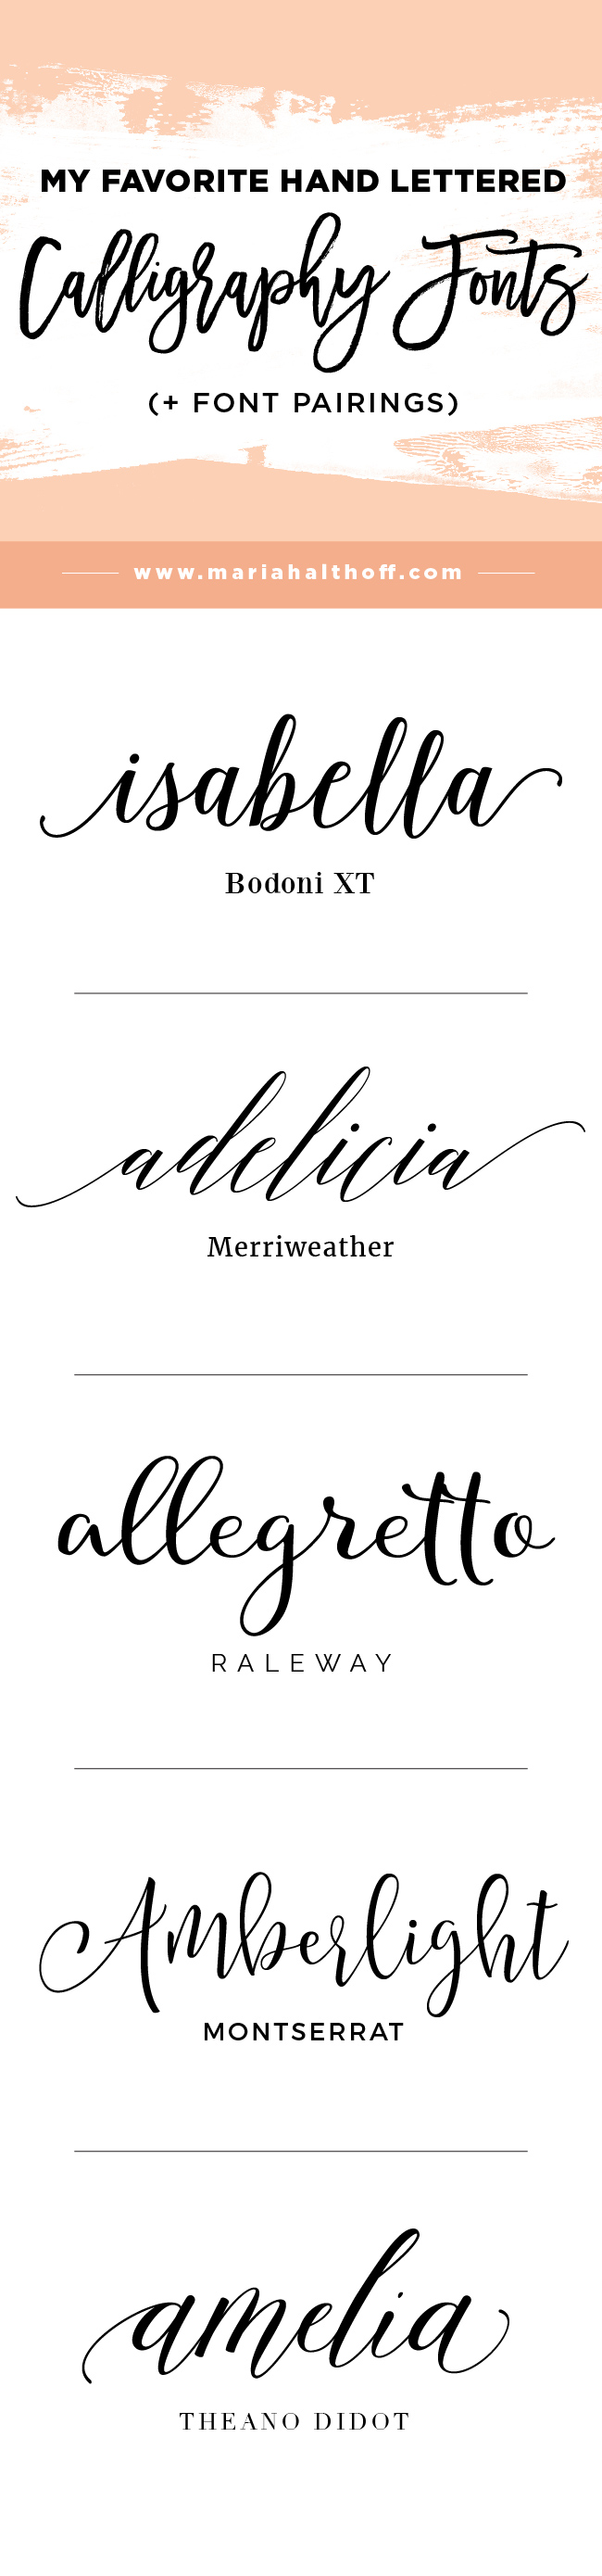 Calligraphy Fonts List My Top 5 Favorite Hand Lettered Calligraphy Fonts Font Pairings